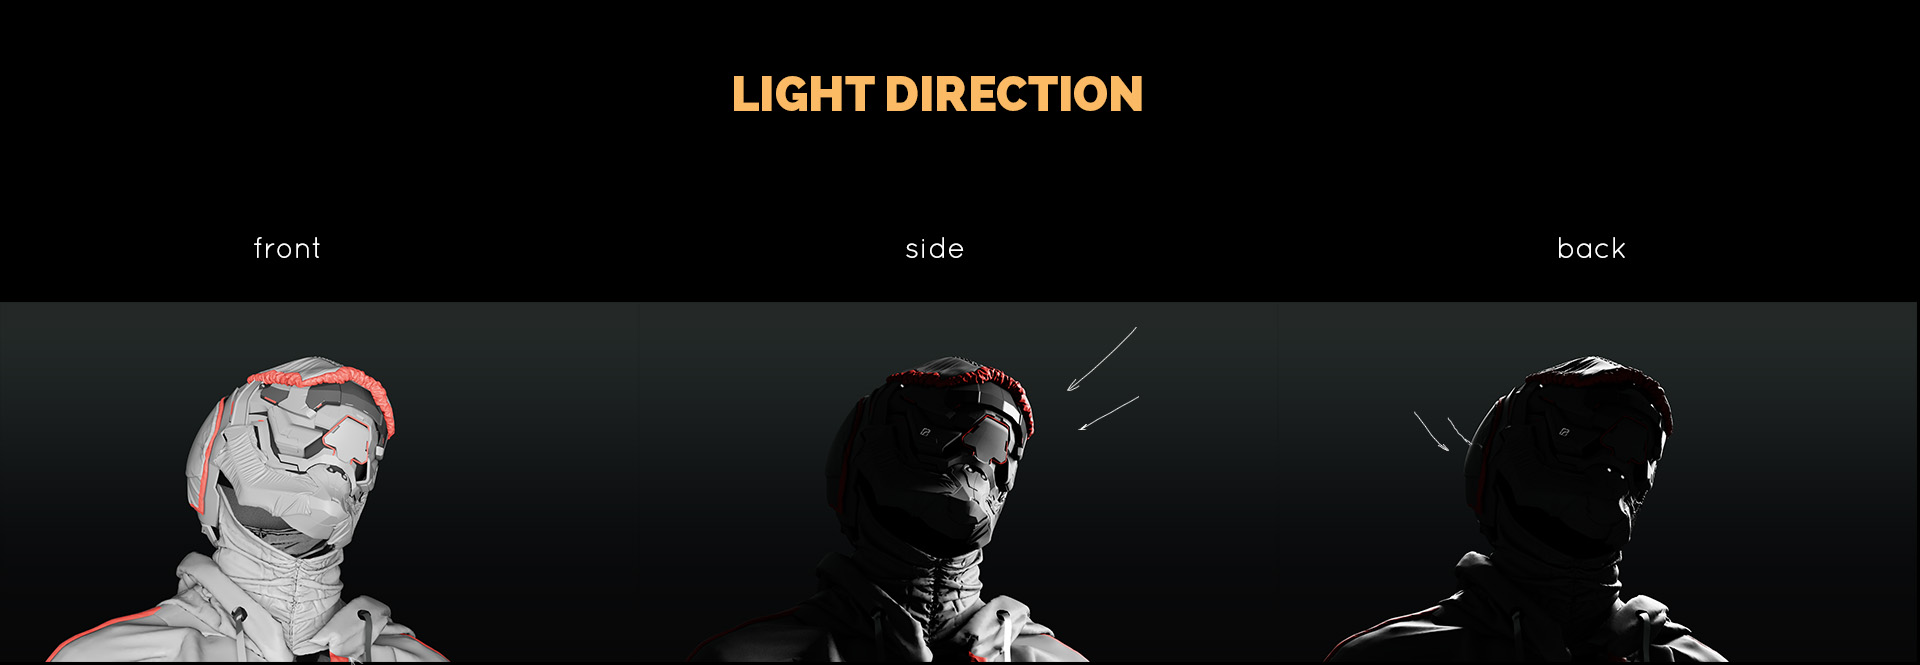 lighting tutorial direction